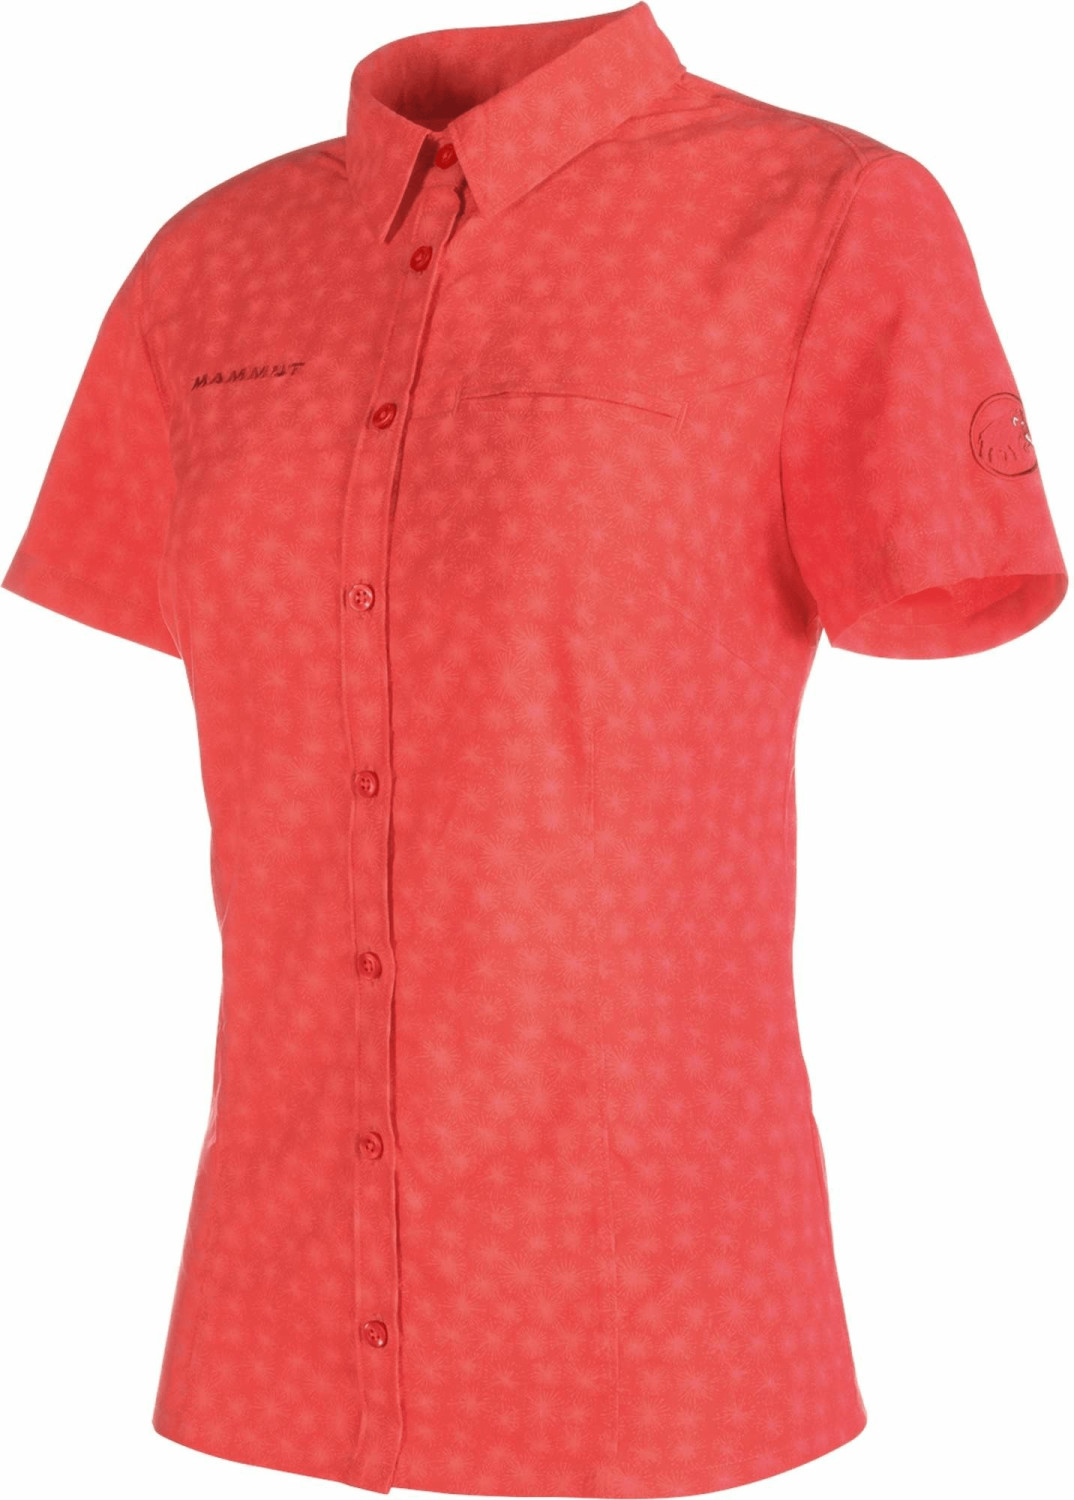 Mammut Trovat Advanced SS Shirt W barberry Preisvergleich